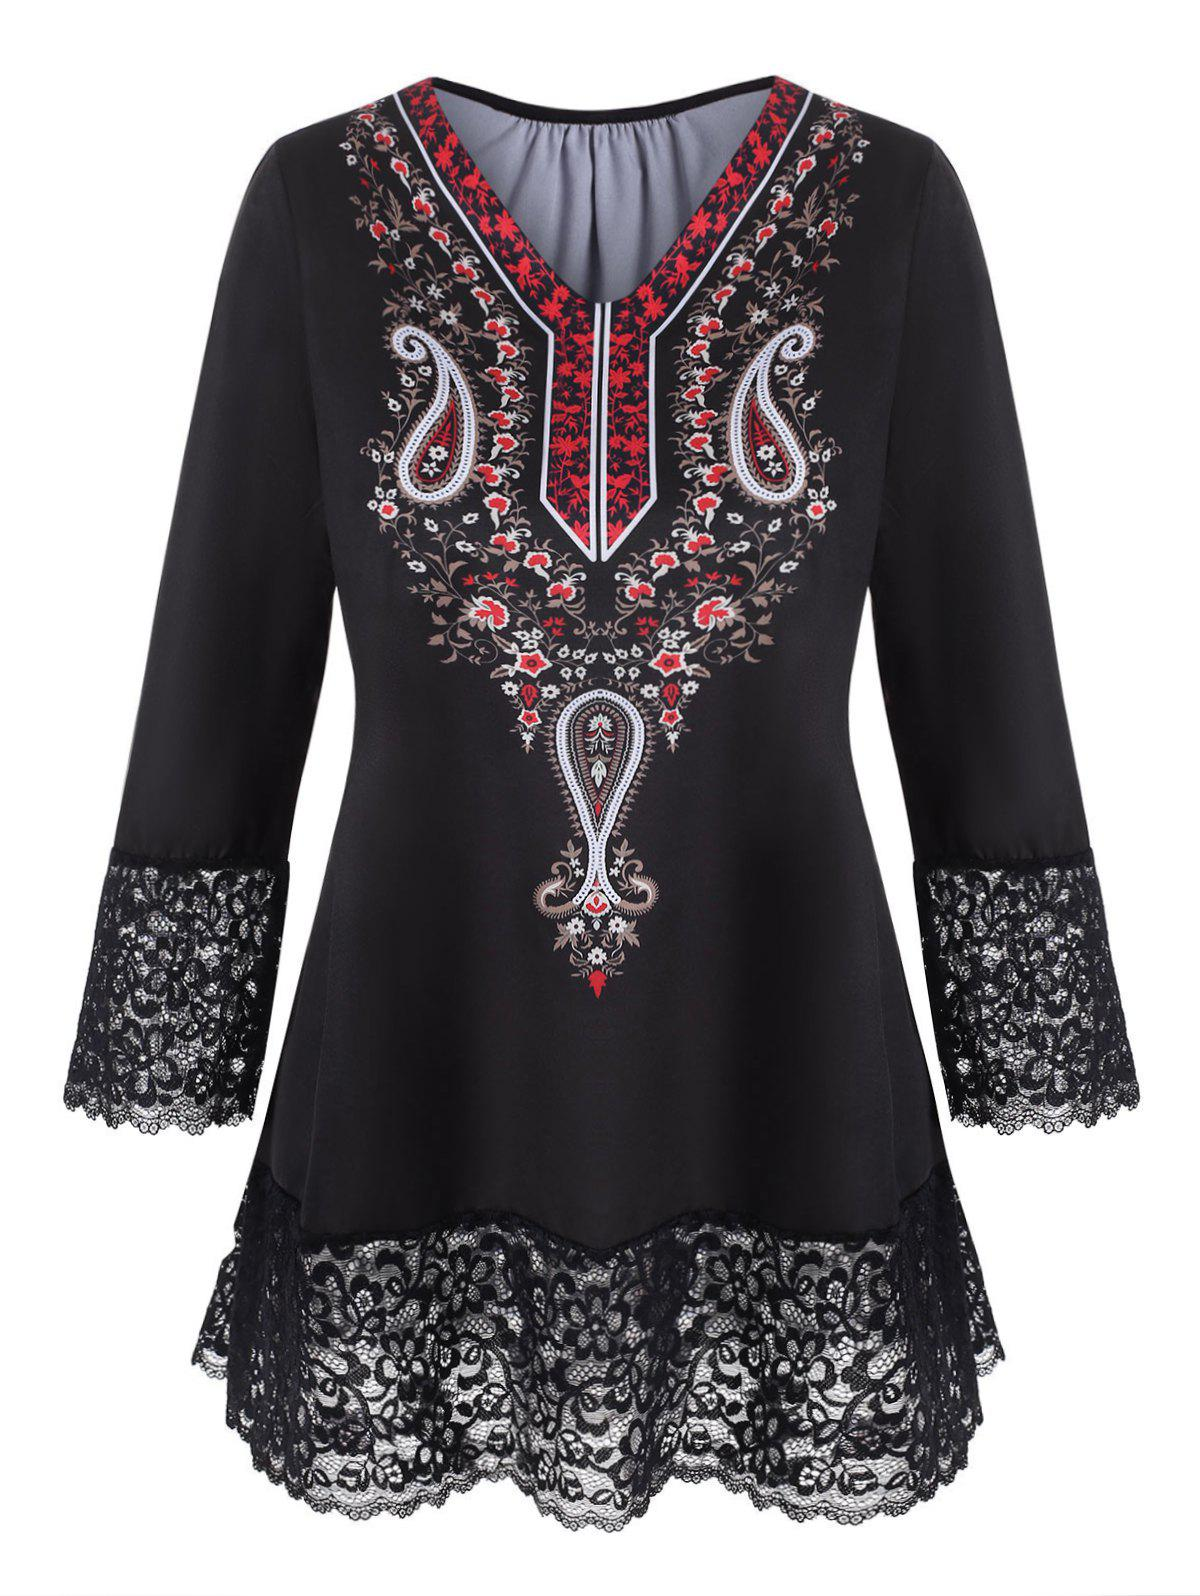 Plus Size Floral Paisley Print Lace Trim T Shirt - BLACK 1X